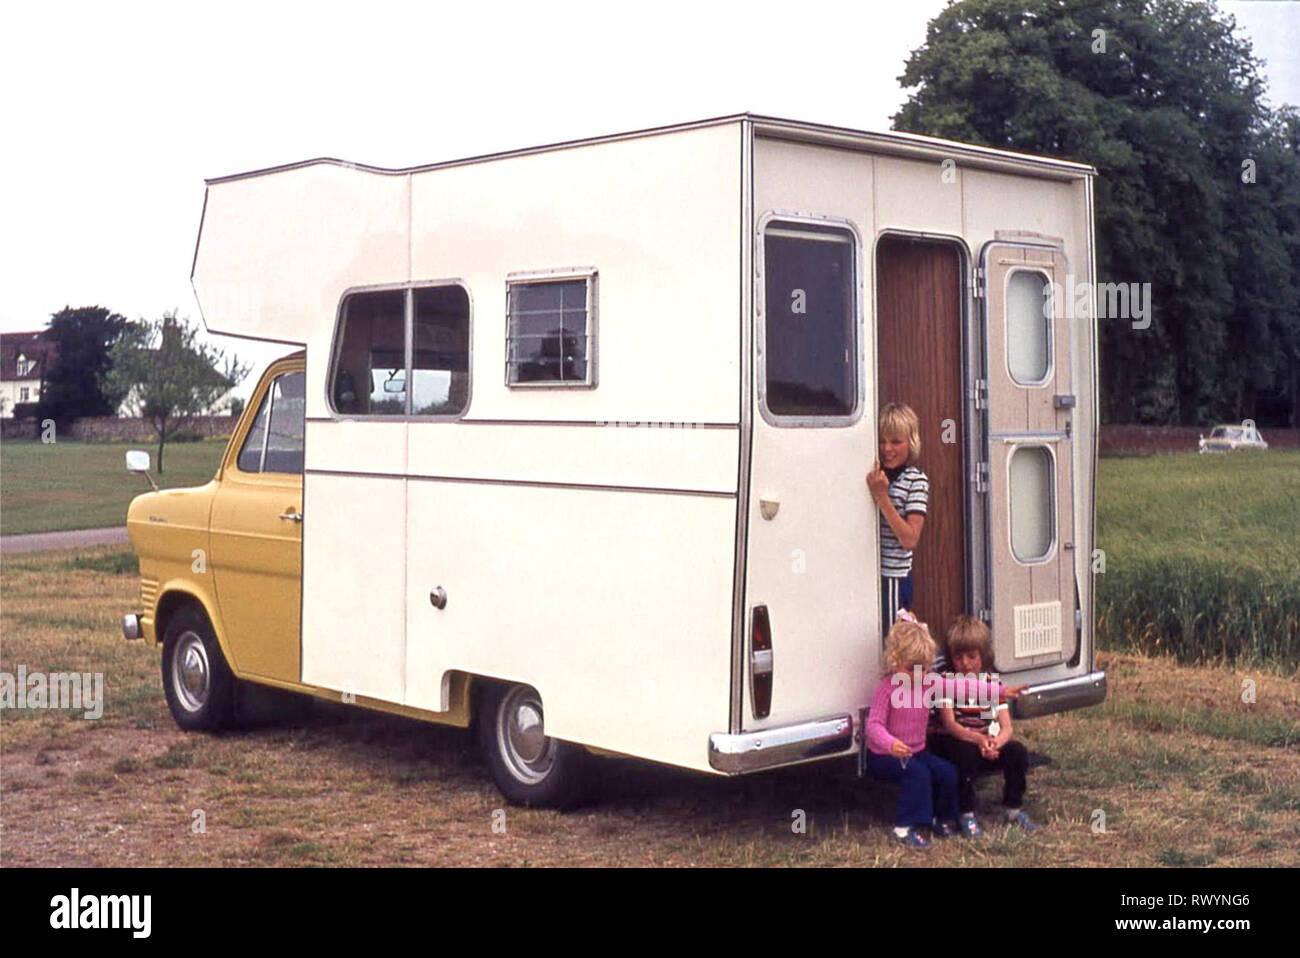 Purpose made RV camper van motorhome built 1970s on yellow Ford Transit chasis 3 young childen 70s family holiday trip around East Anglia England UK - Stock Image